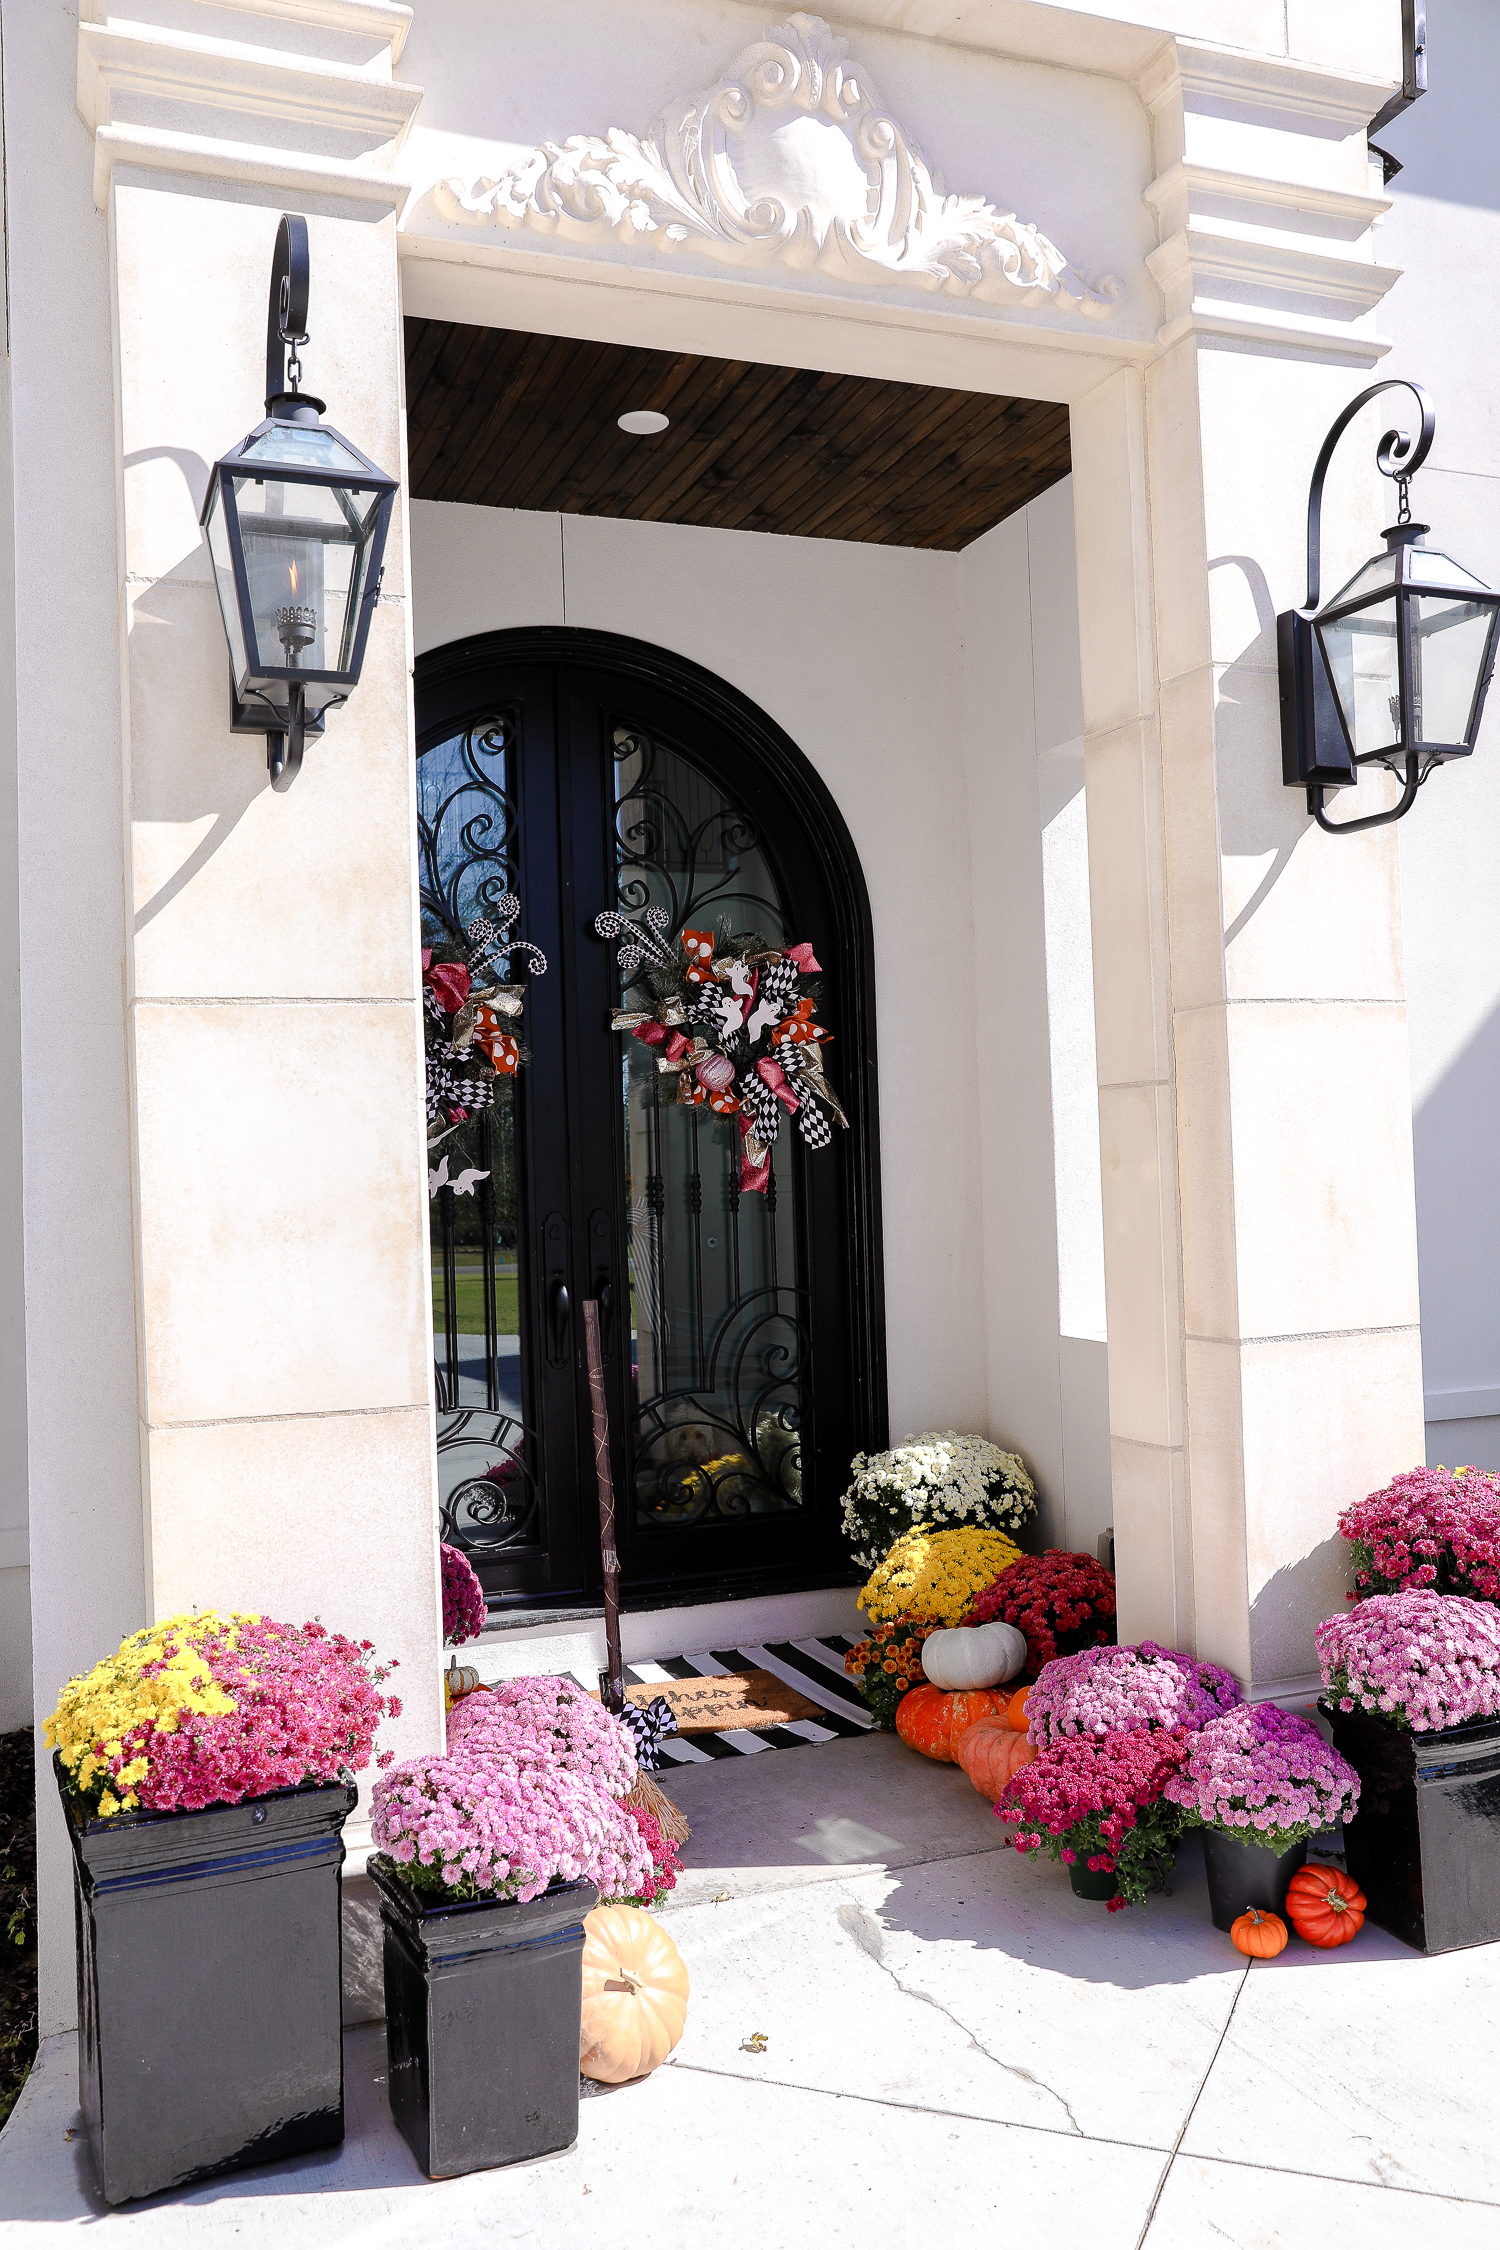 solar gas lights, luxury custom build home, pink mums, front door decor striped rug, pink mums, fall halloween decor, shop hello holidays, emily gemma | Fall & Halloween Home Decor Tour by popular Oklahoma life and style blog, The Sweetest Thing: image of the front entrance to a home decorated with pink mums, pumpkins, a black and white stripe rug, and a welcome mat.